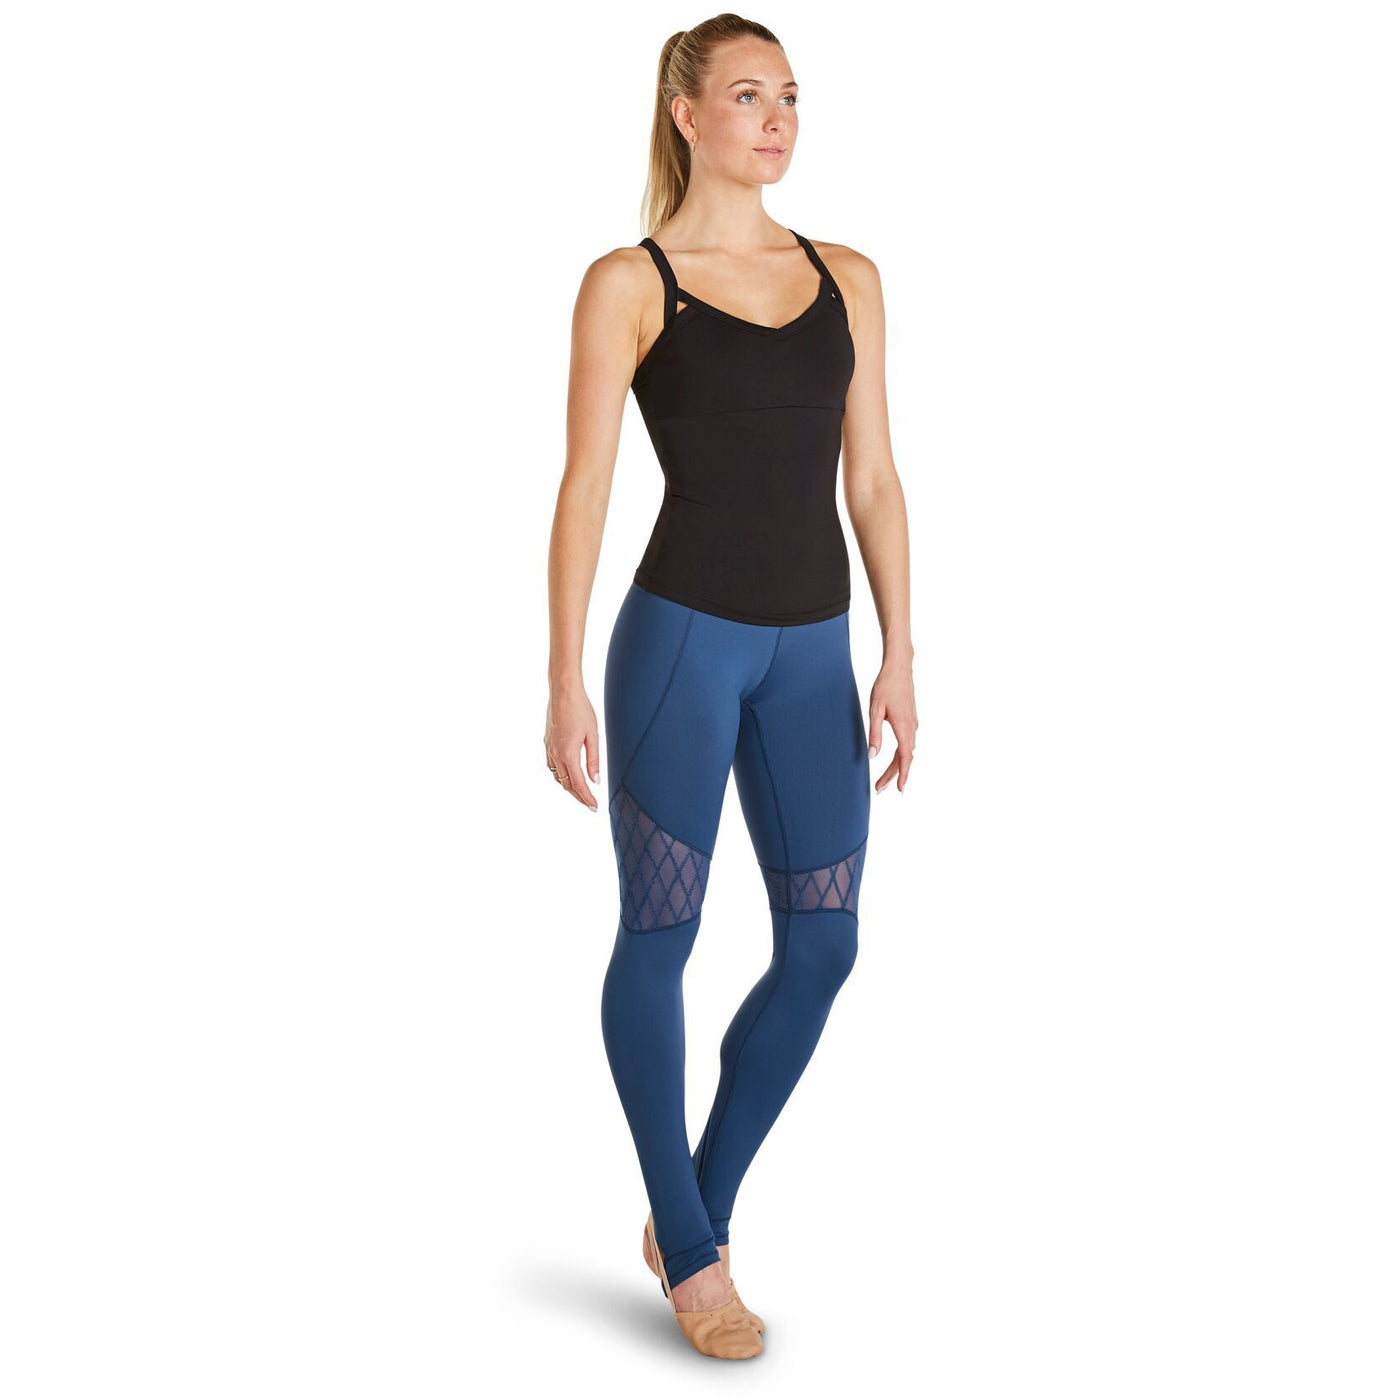 Diamond Flock Mesh Stirrup Leggings - Adult